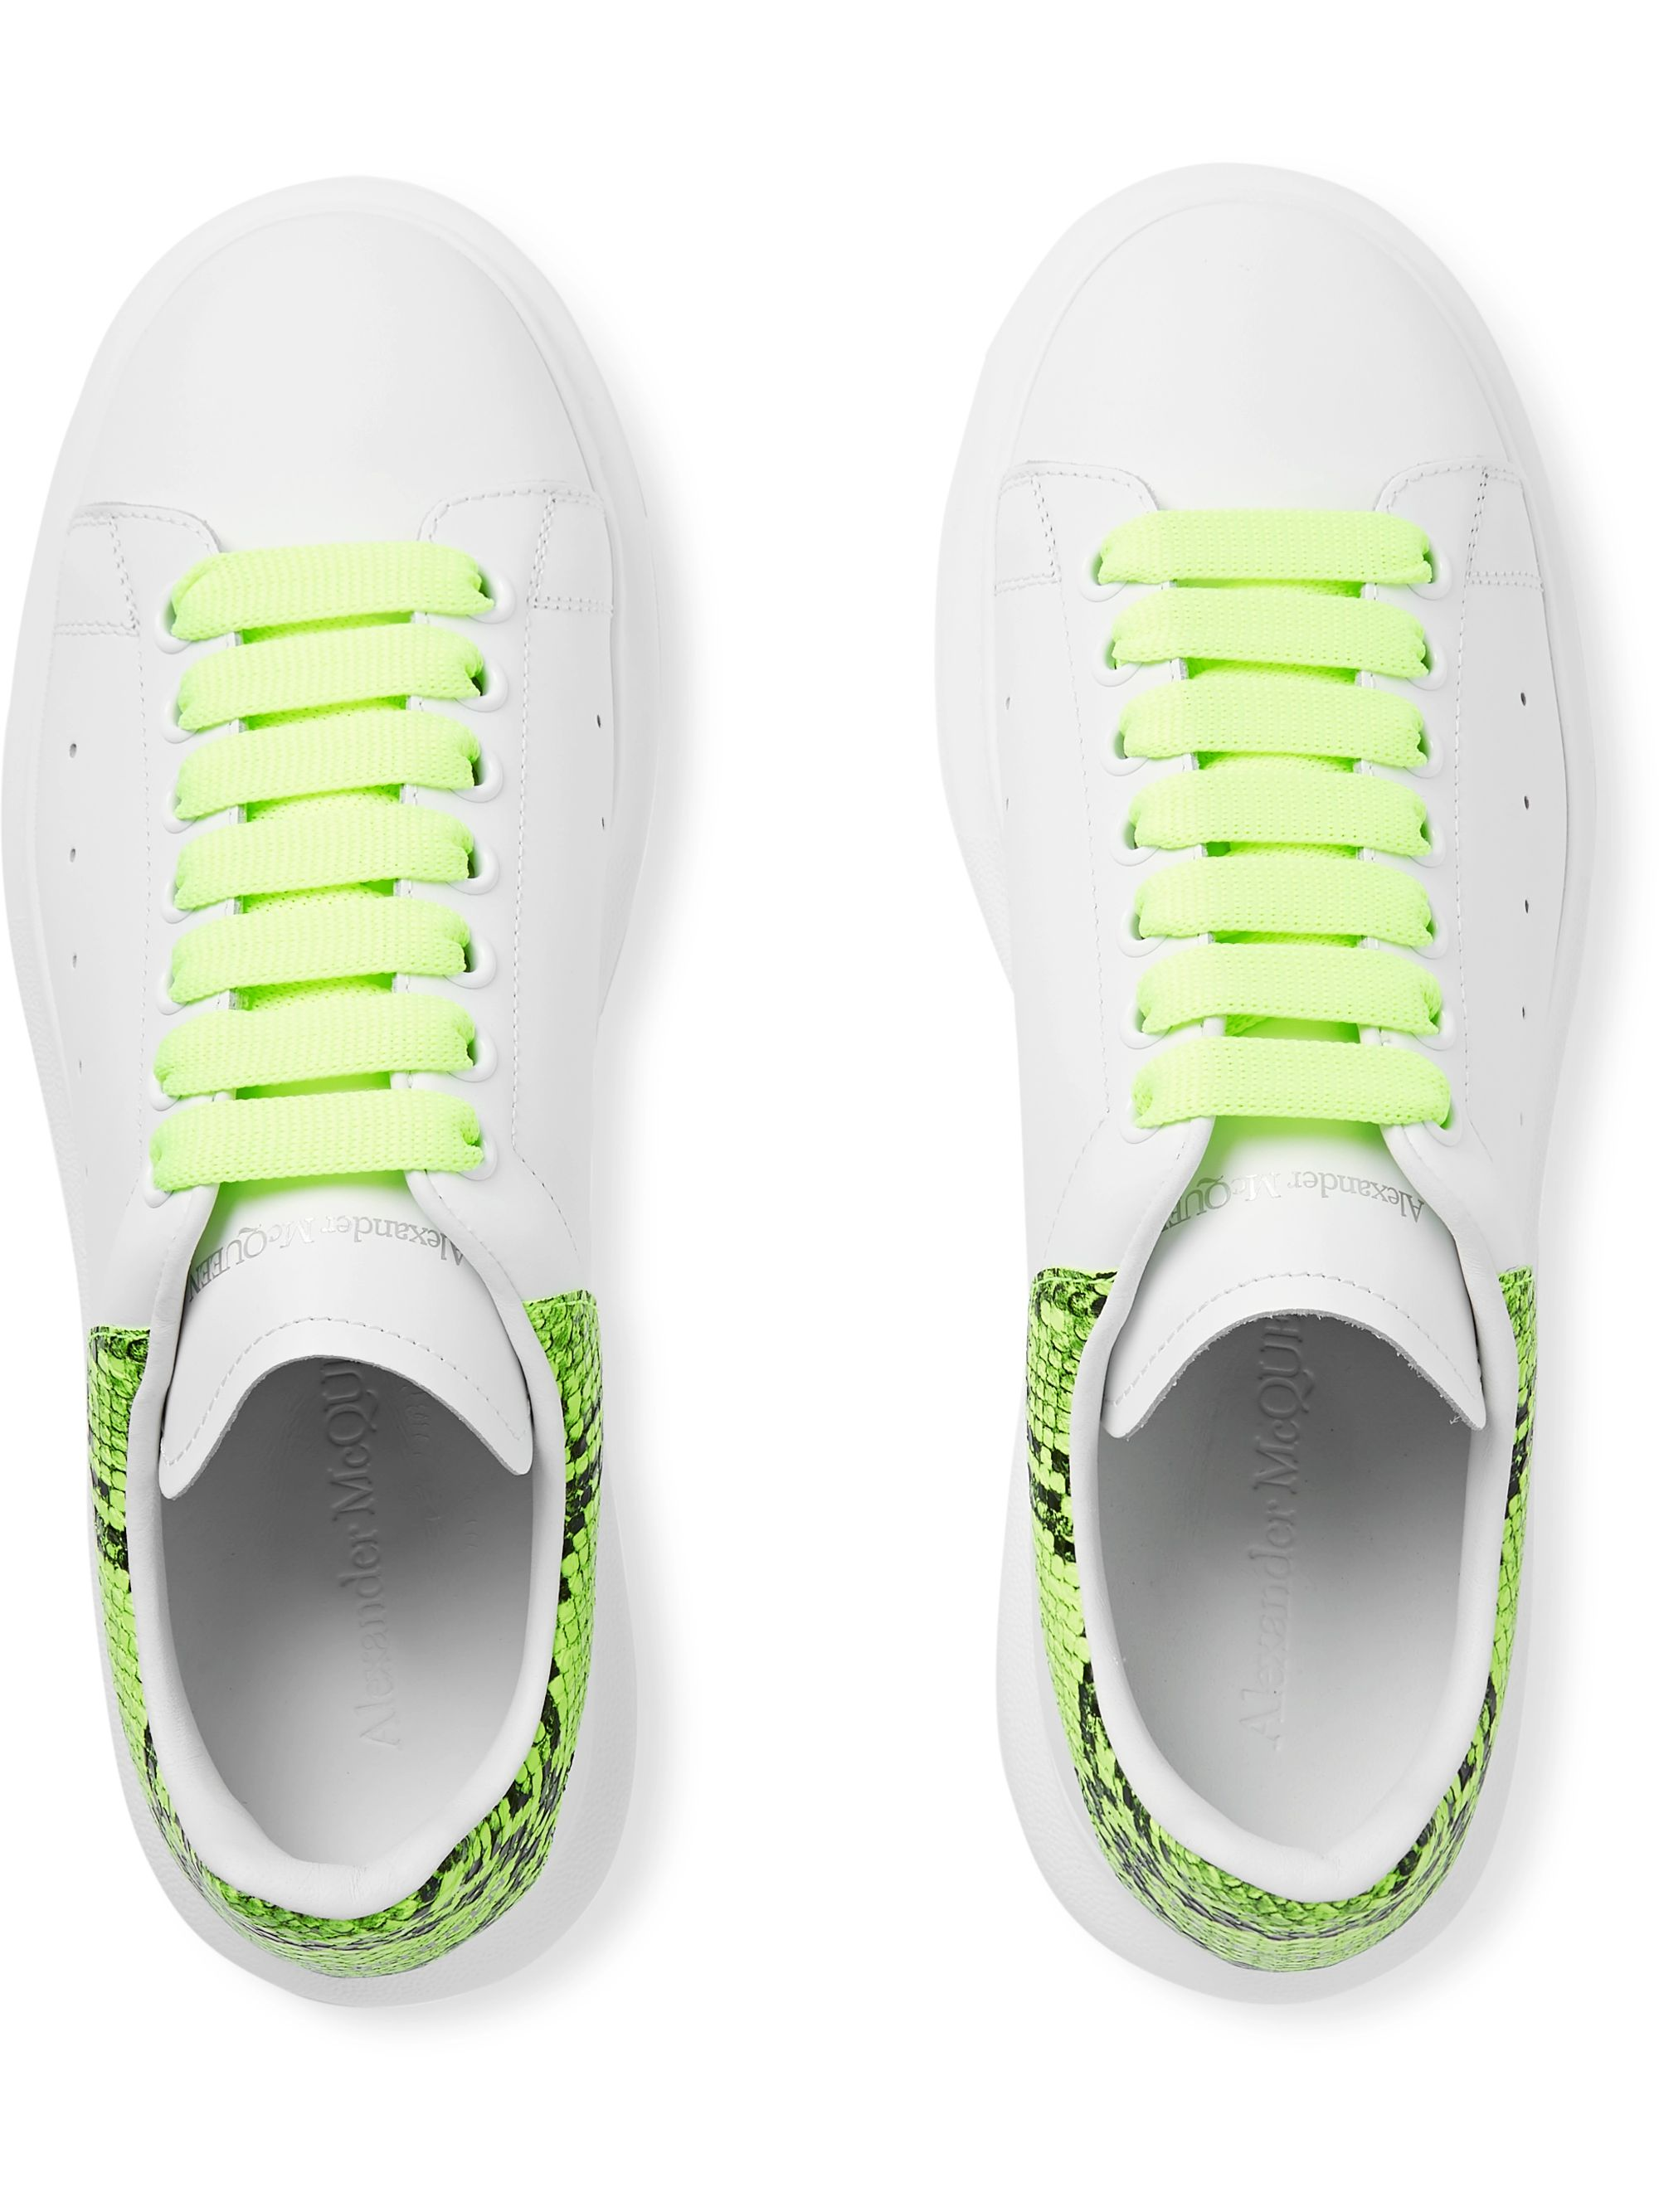 Alexander McQueen Exaggerated-Sole Neon Snake-Effect Leather Sneakers